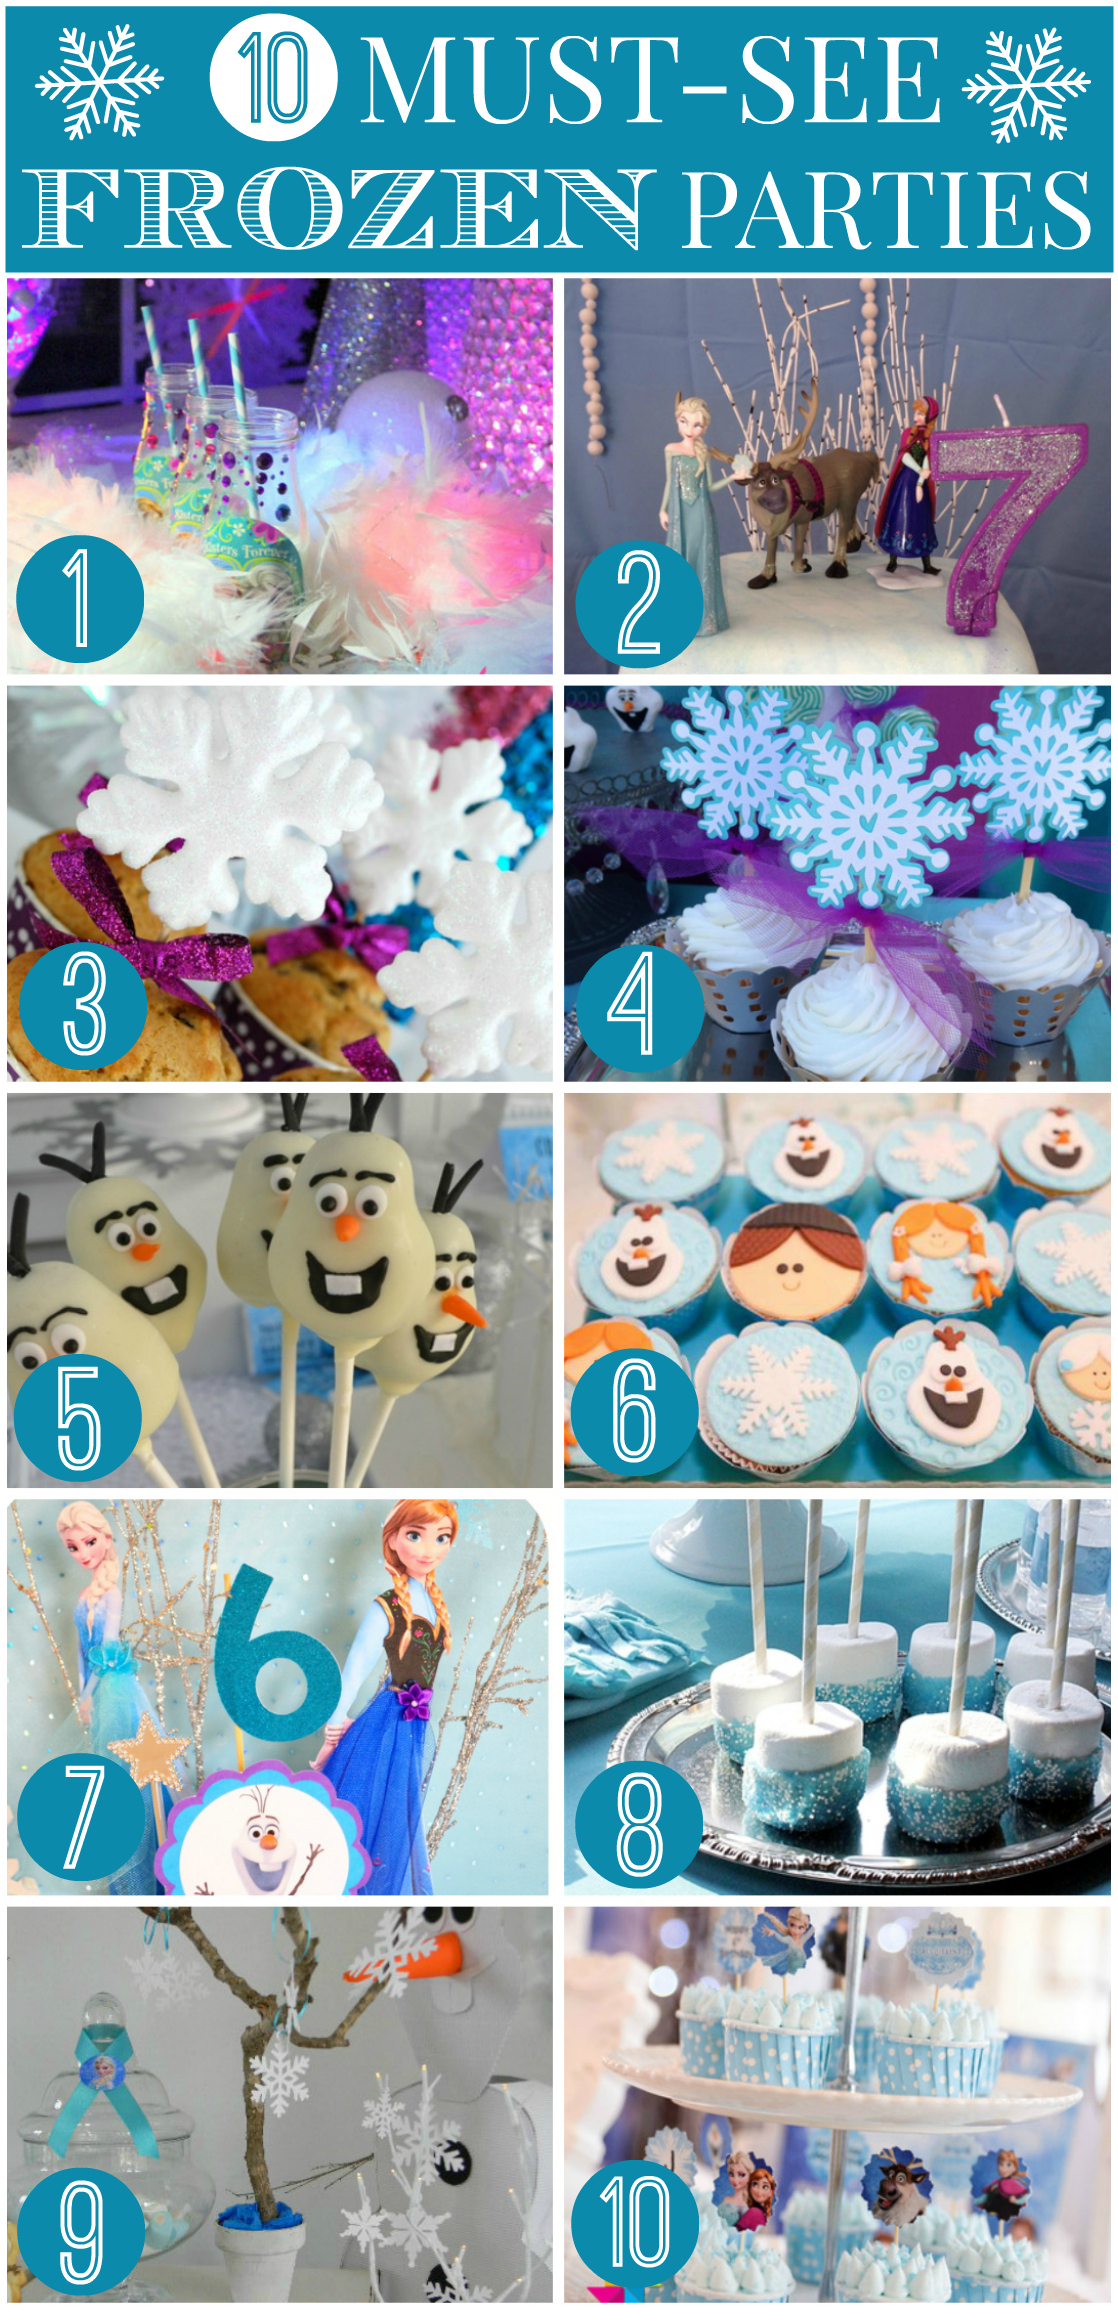 10 Must Have Makeup Palettes For 2017: Frozen Parties - 10 You Must See!